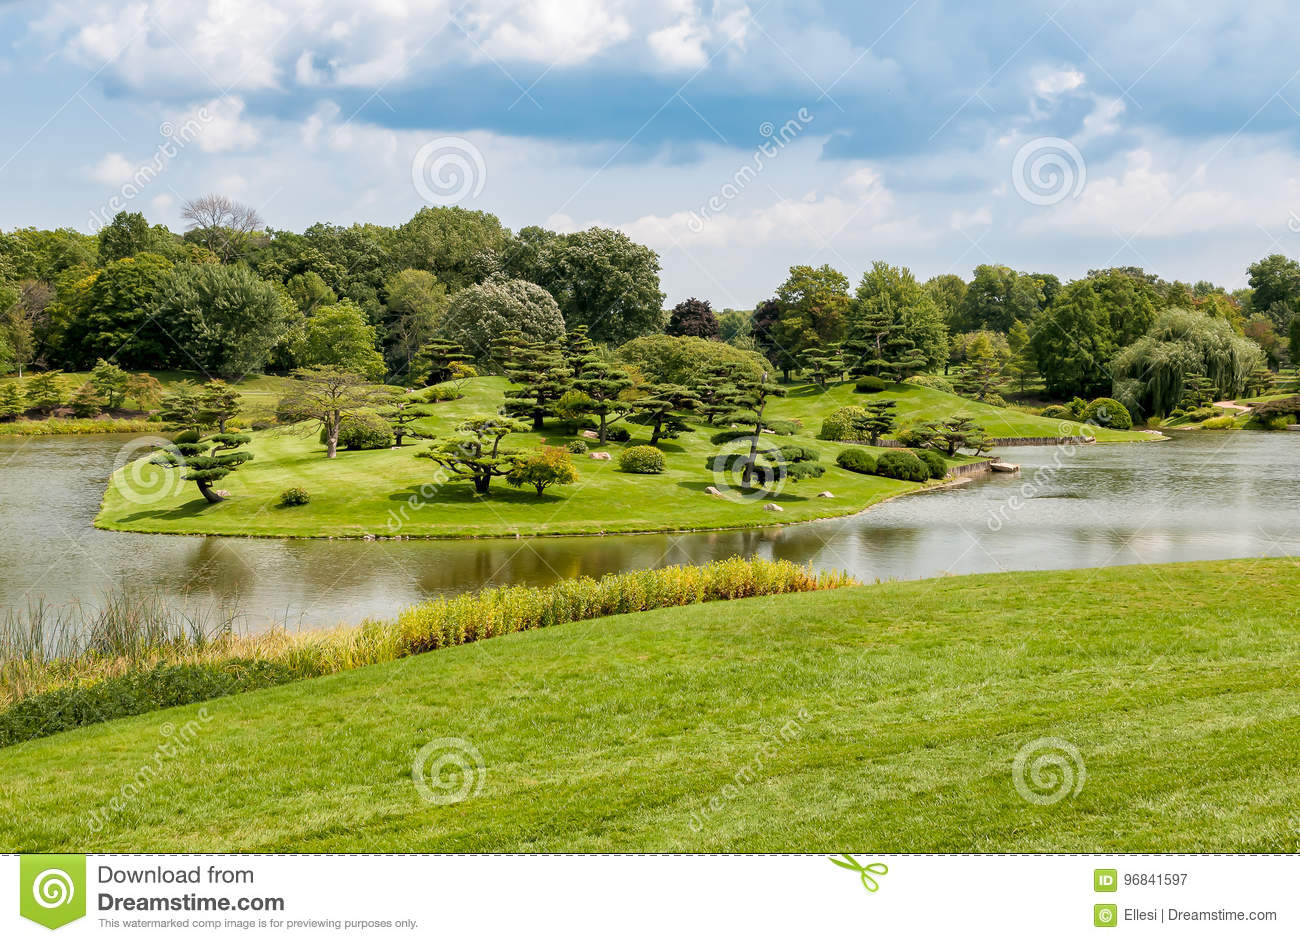 Summer Landscape on sunny day of Japanese Island in Chicago Botanic Garden.